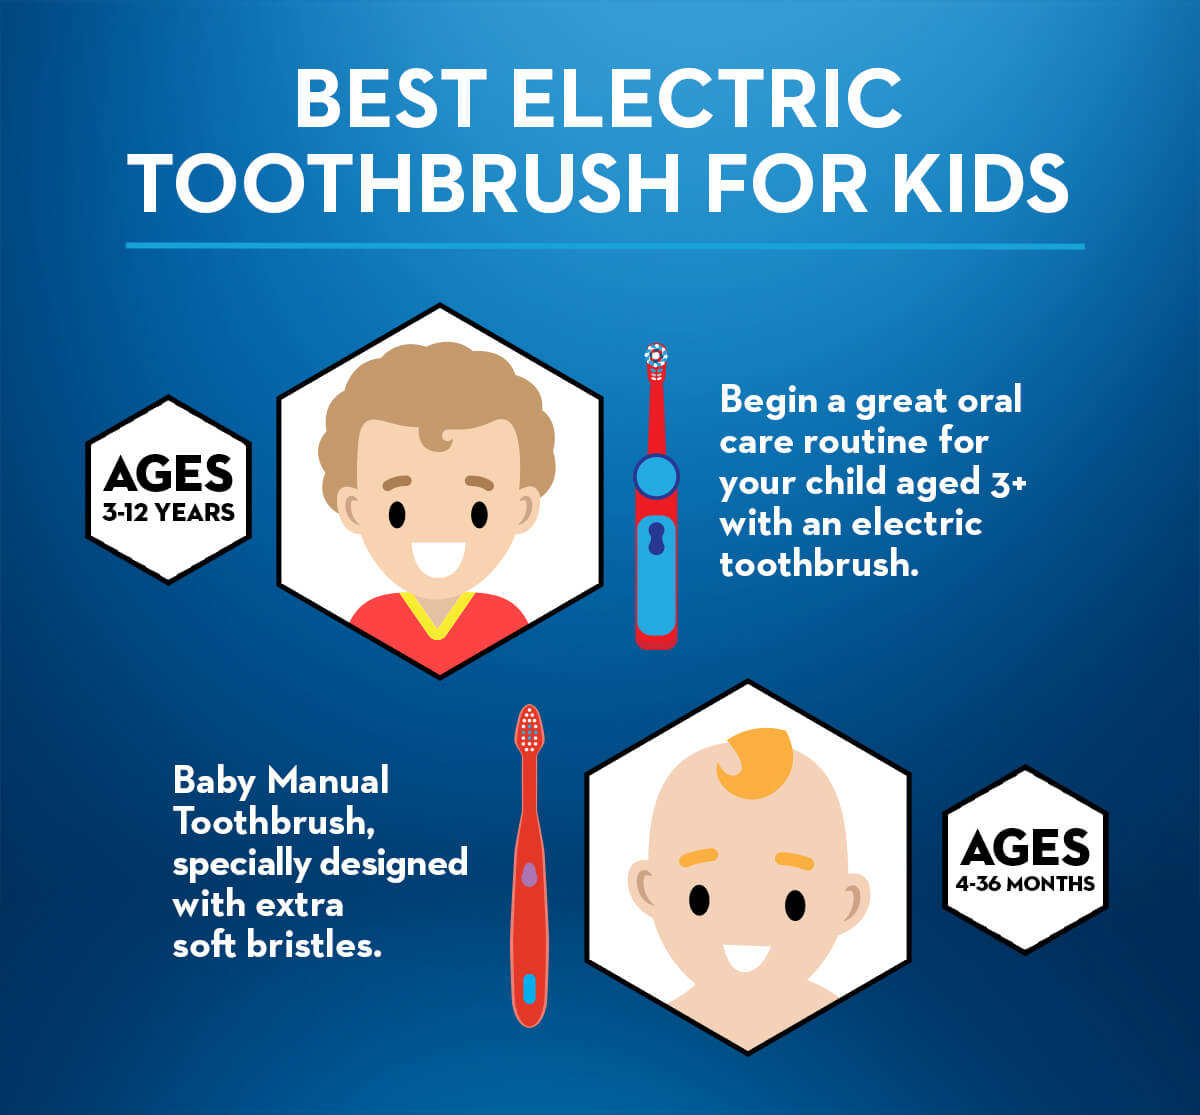 Best Electric Toothbrush for kids according to their age